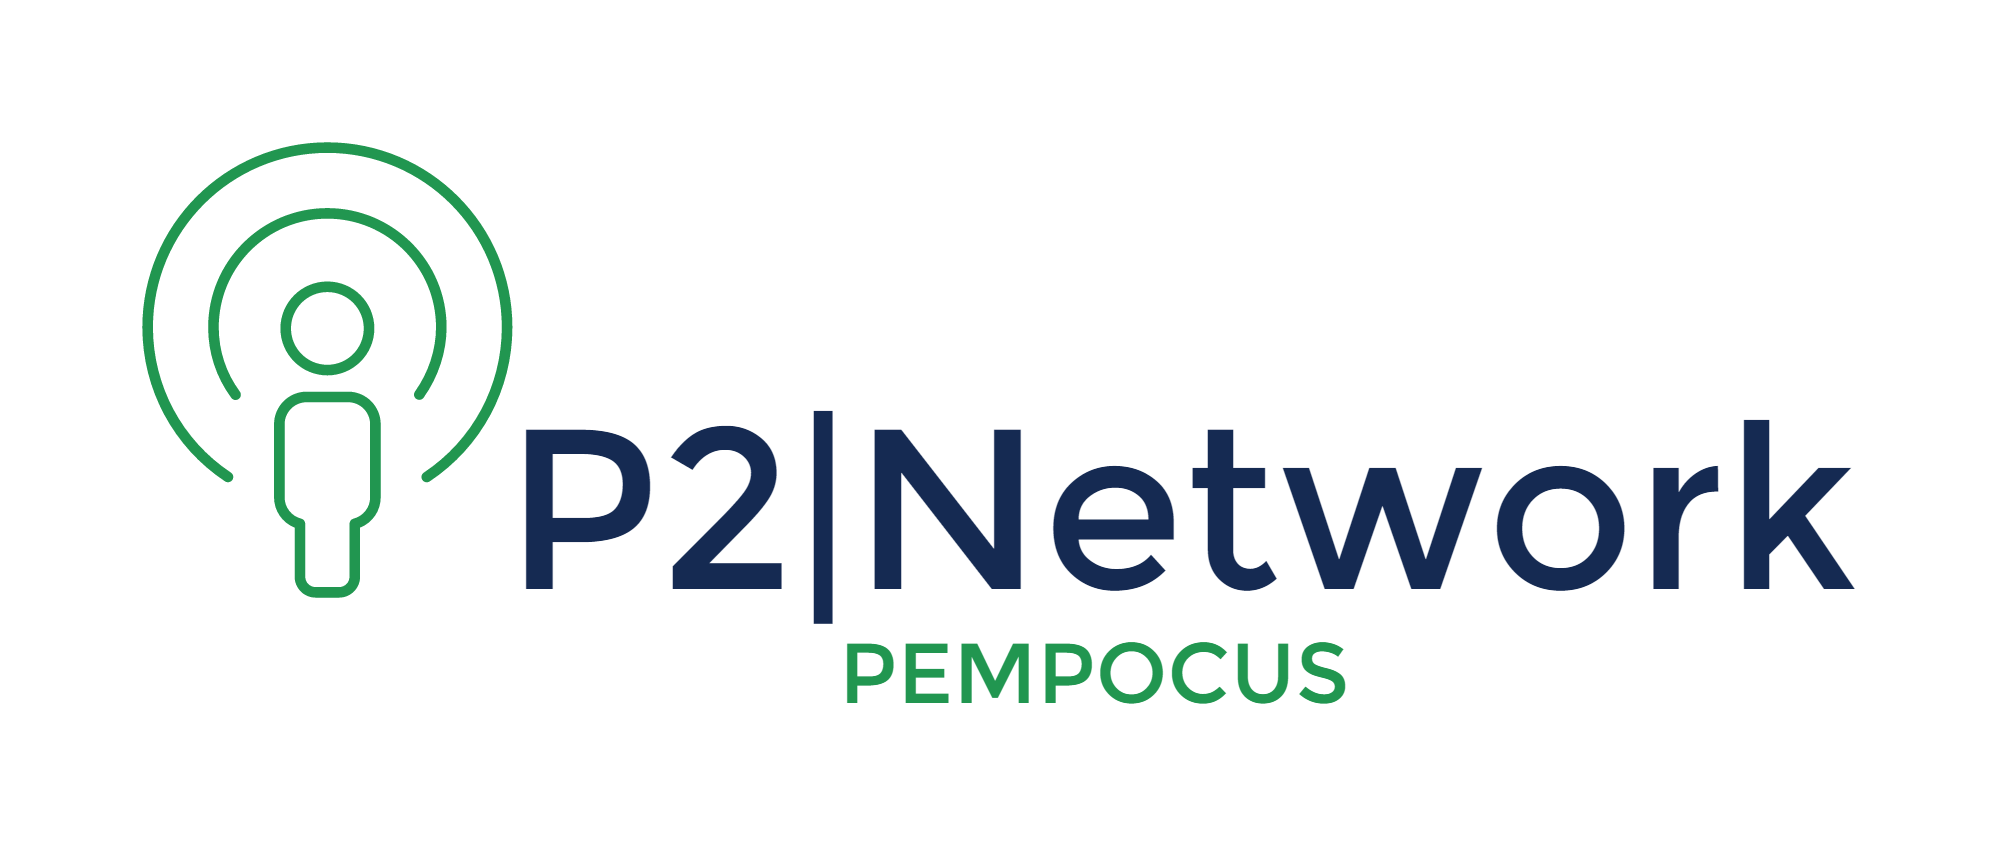 Welcome to the new P2Network.com